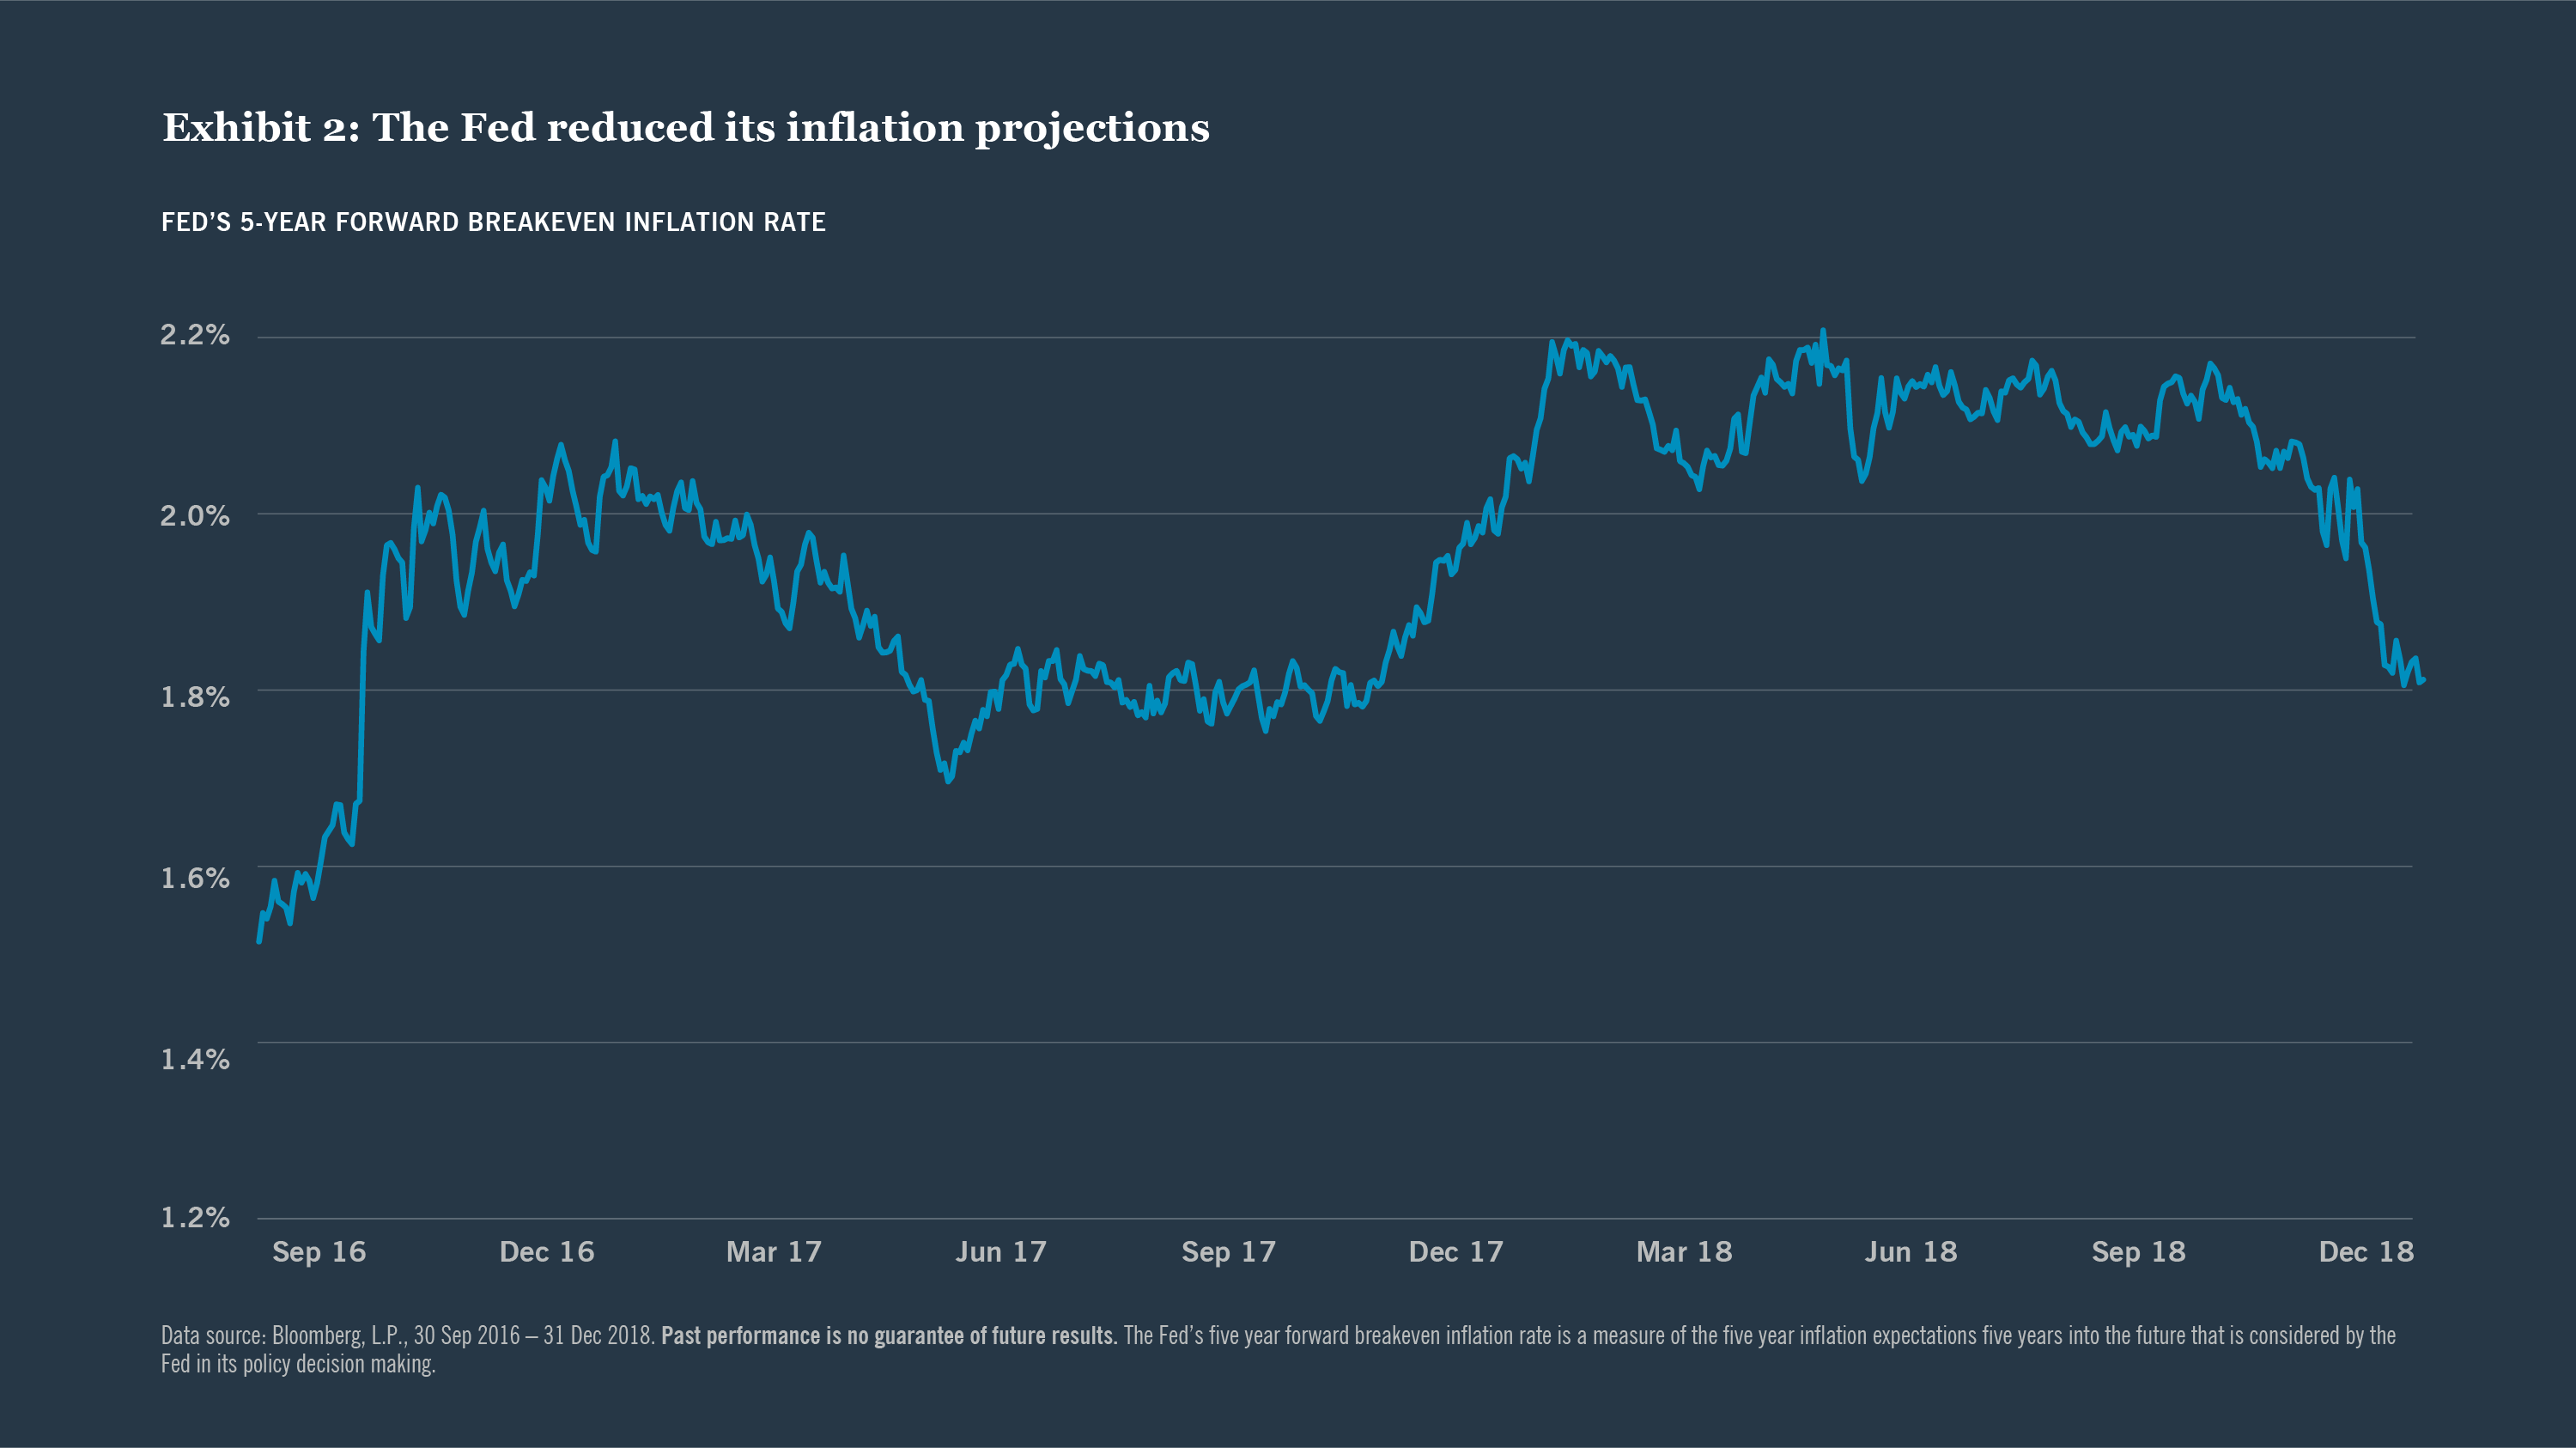 Exhibit 2: The Fed reduced its inflation projections